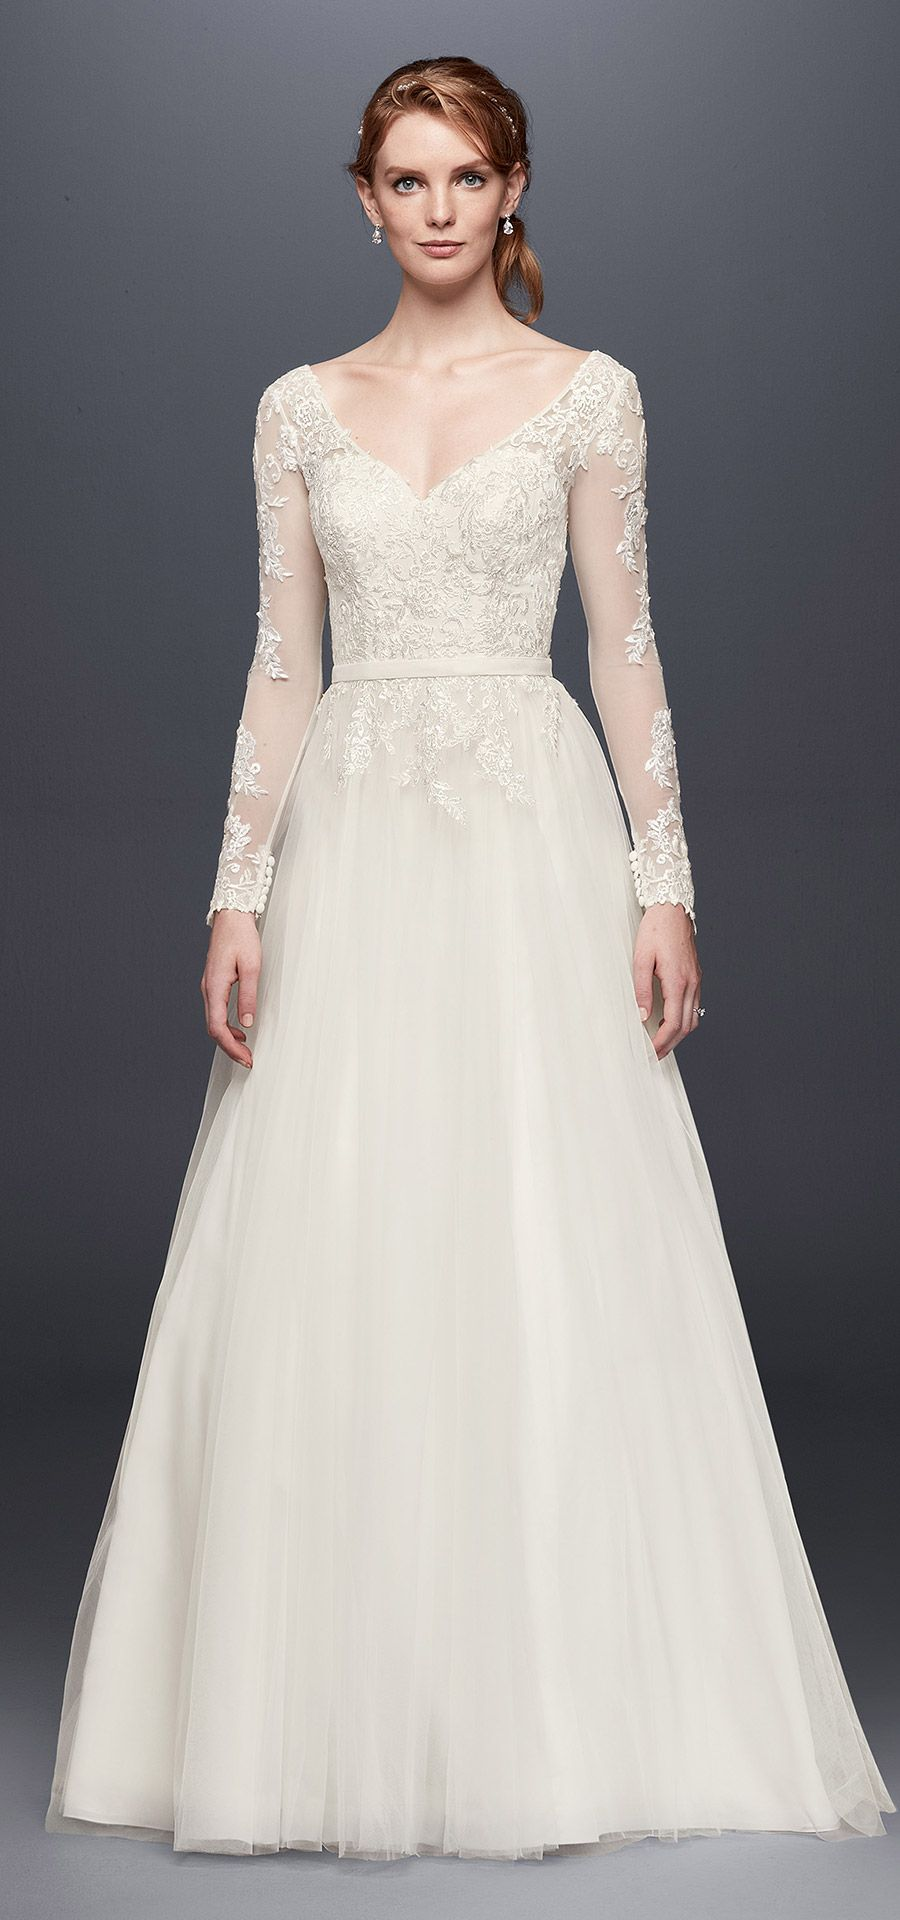 Long sleeve wedding dress with low back style wg wedding gowns